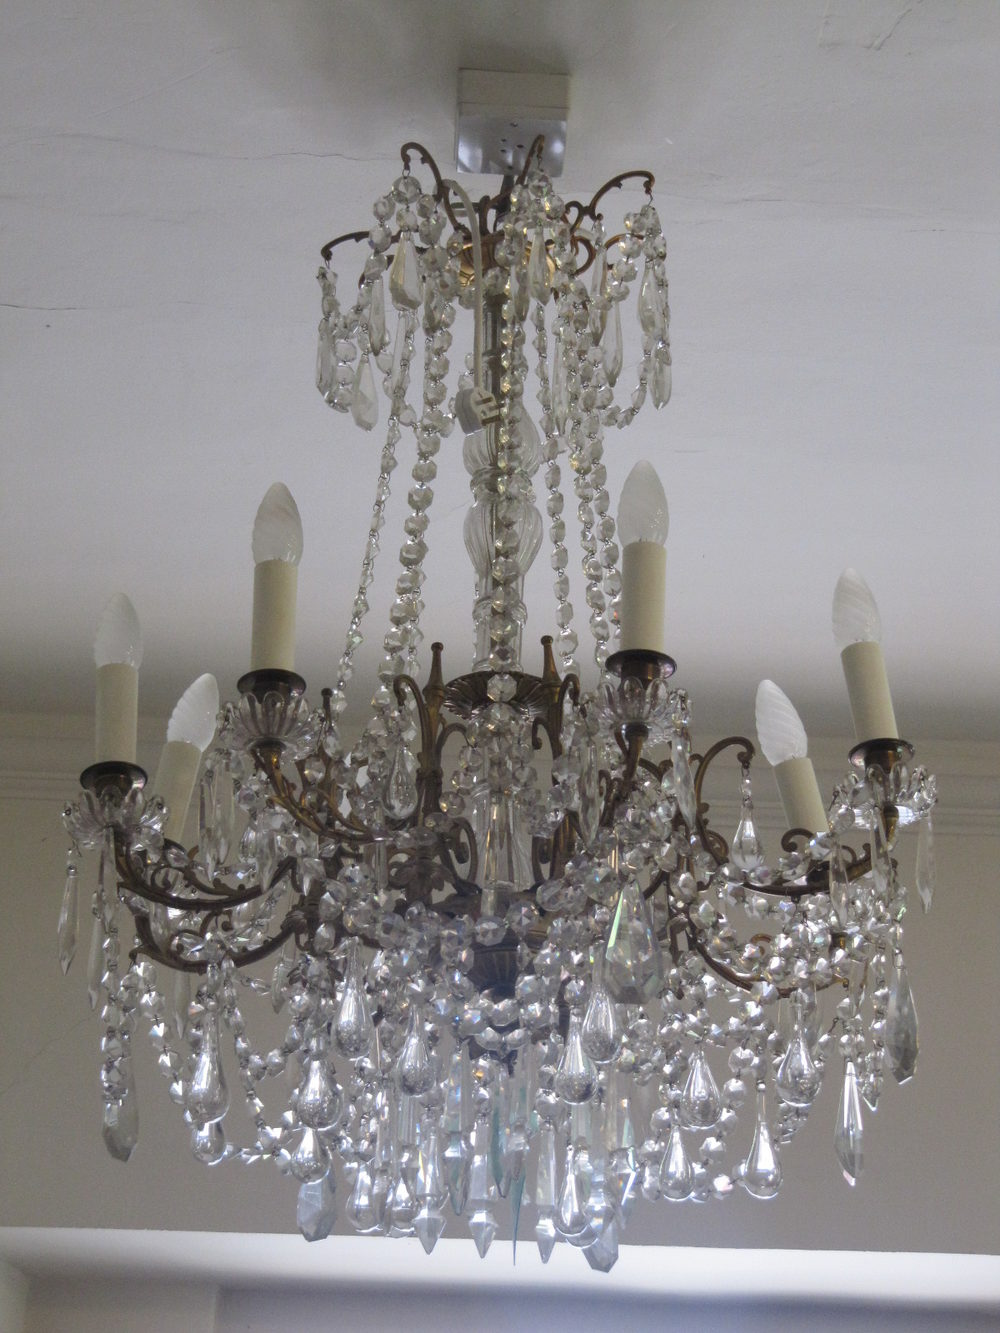 A French Chandelier - Antiques Atlas - A French Chandelier